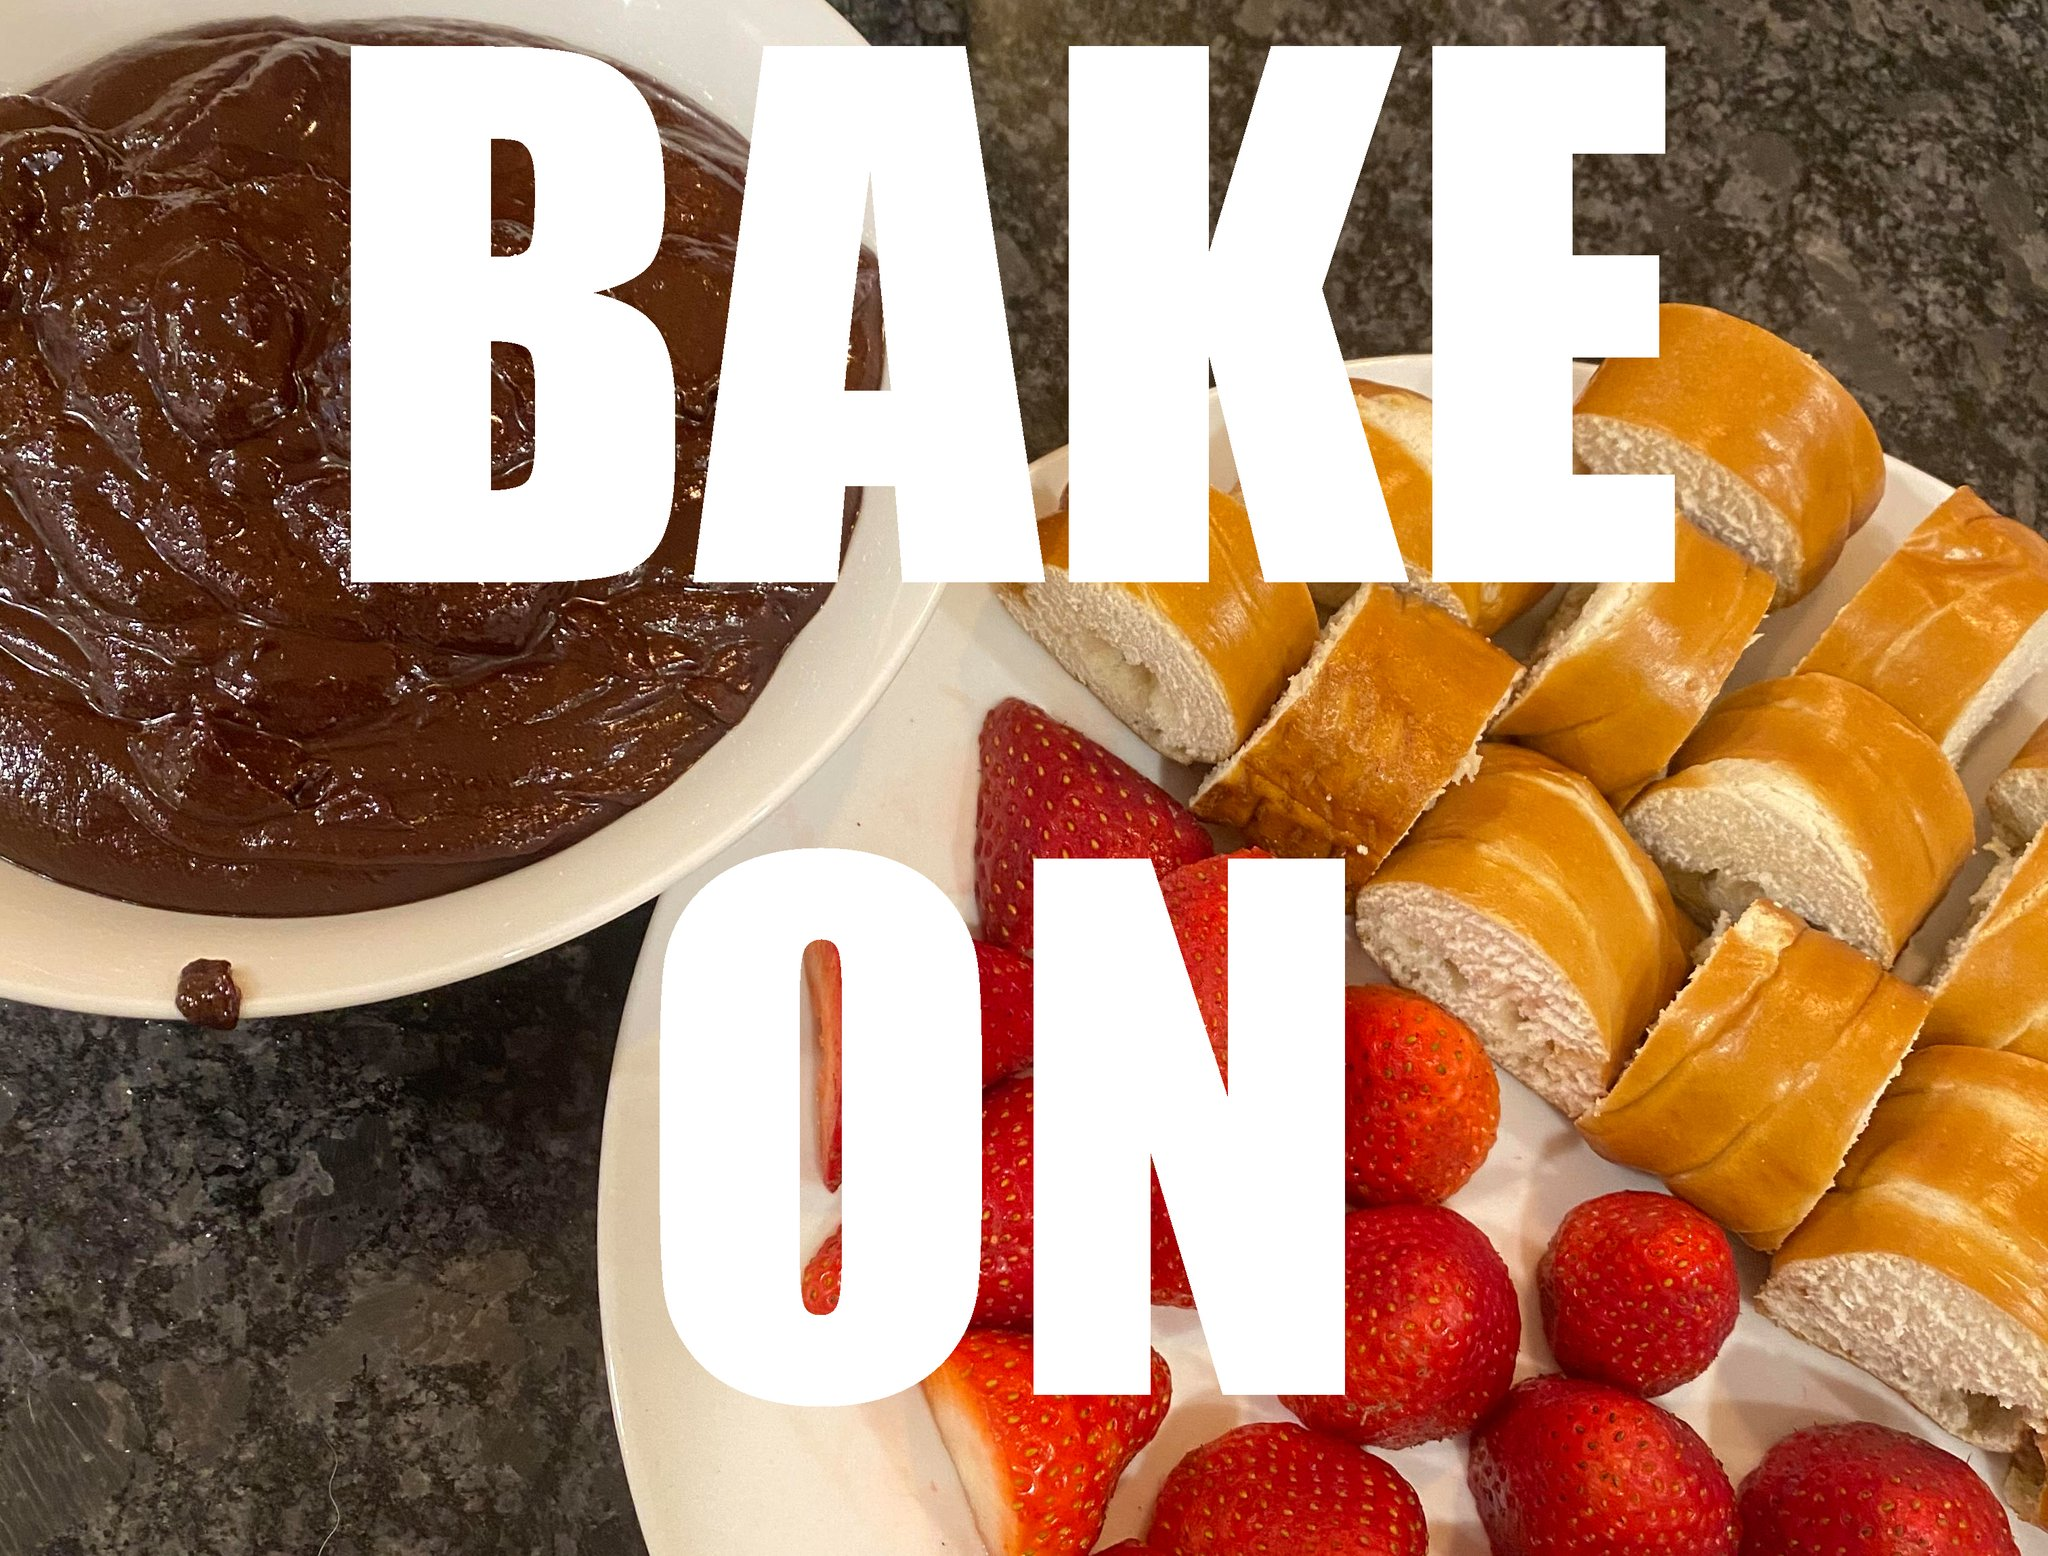 """Text, """"BAKE ON"""" in white block letters superimposed over a photo of sliced bread and strawberries on a plate next to a bowl of melted chocolate"""